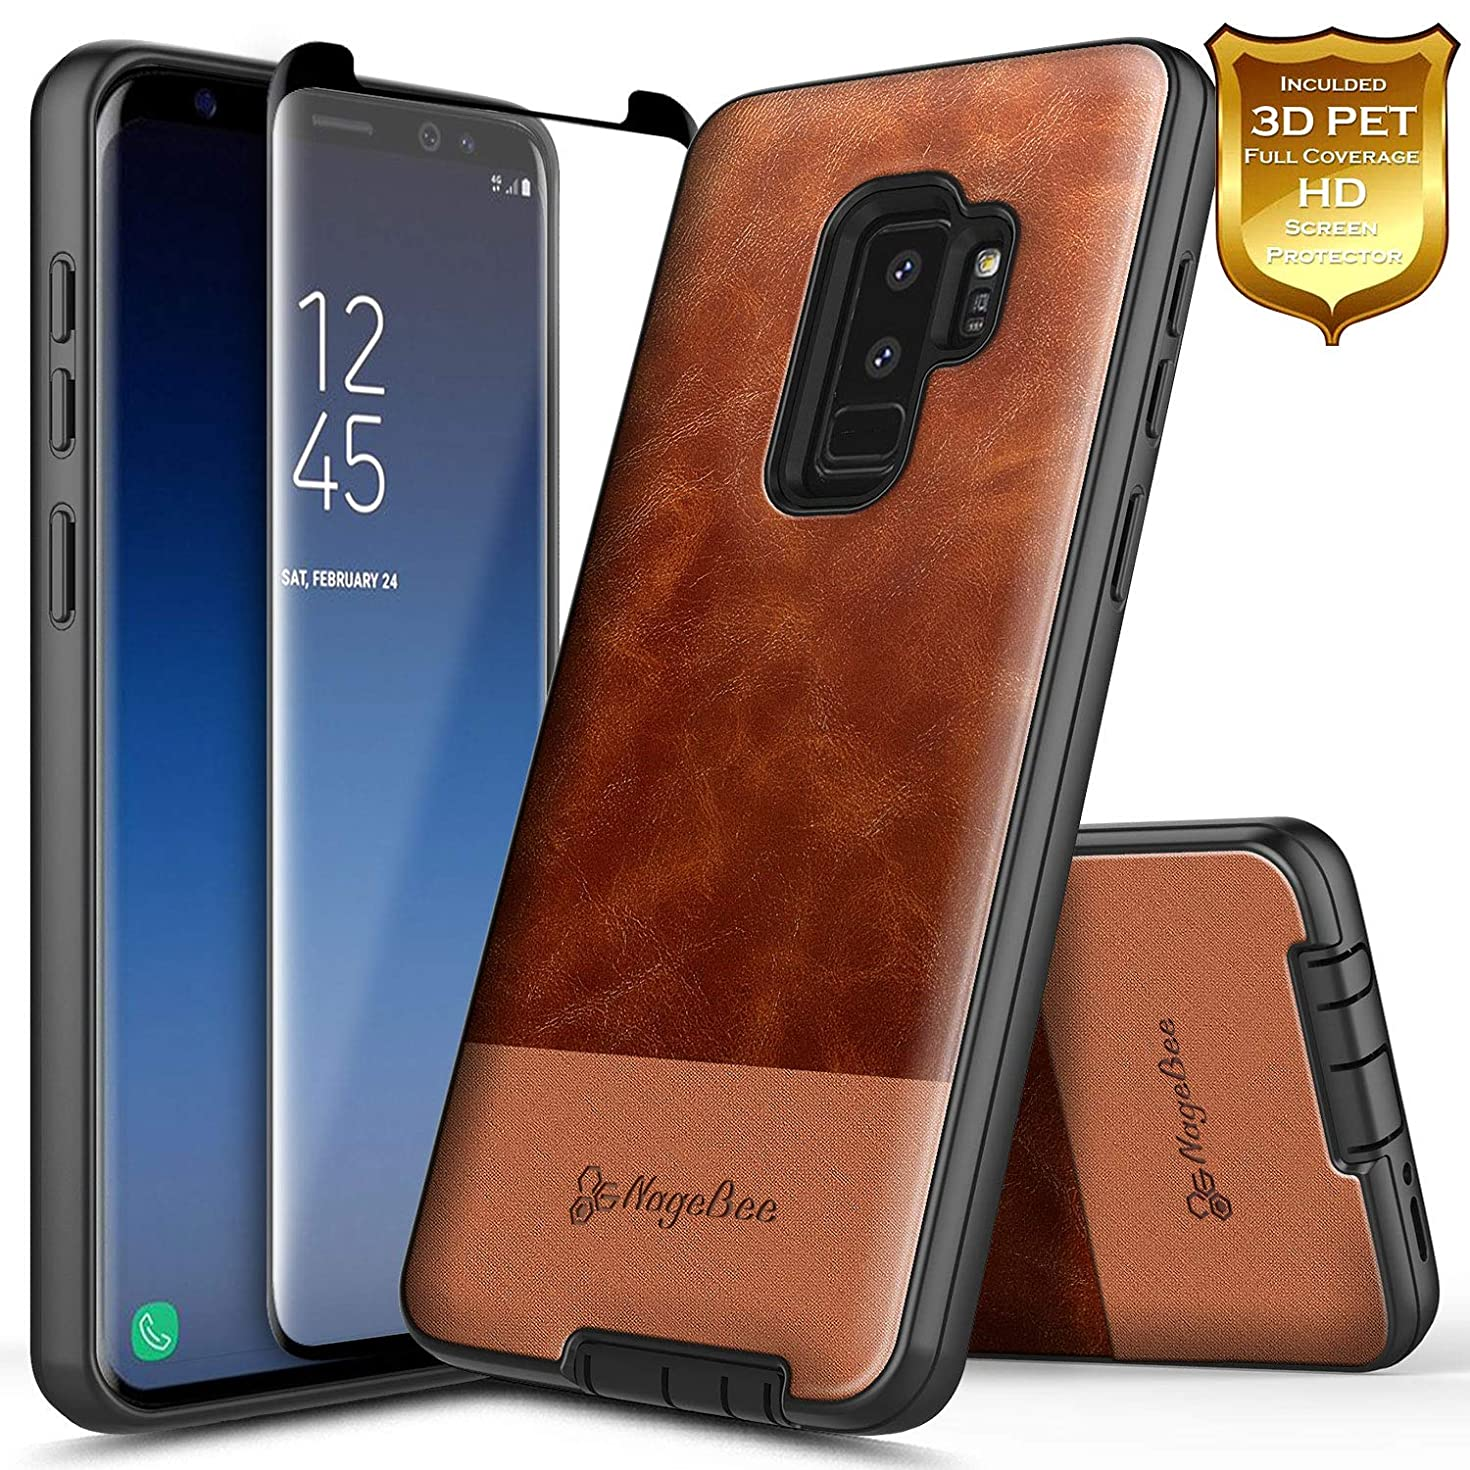 Galaxy S9+ Plus Case with Screen Protector (Full Coverage 3D PET), NageBee Premium [Cowhide Leather] Snap-On Heavy Duty Shockproof Hybrid Defender Rugged Durable Case for Samsung Galaxy S9 Plus -Brown